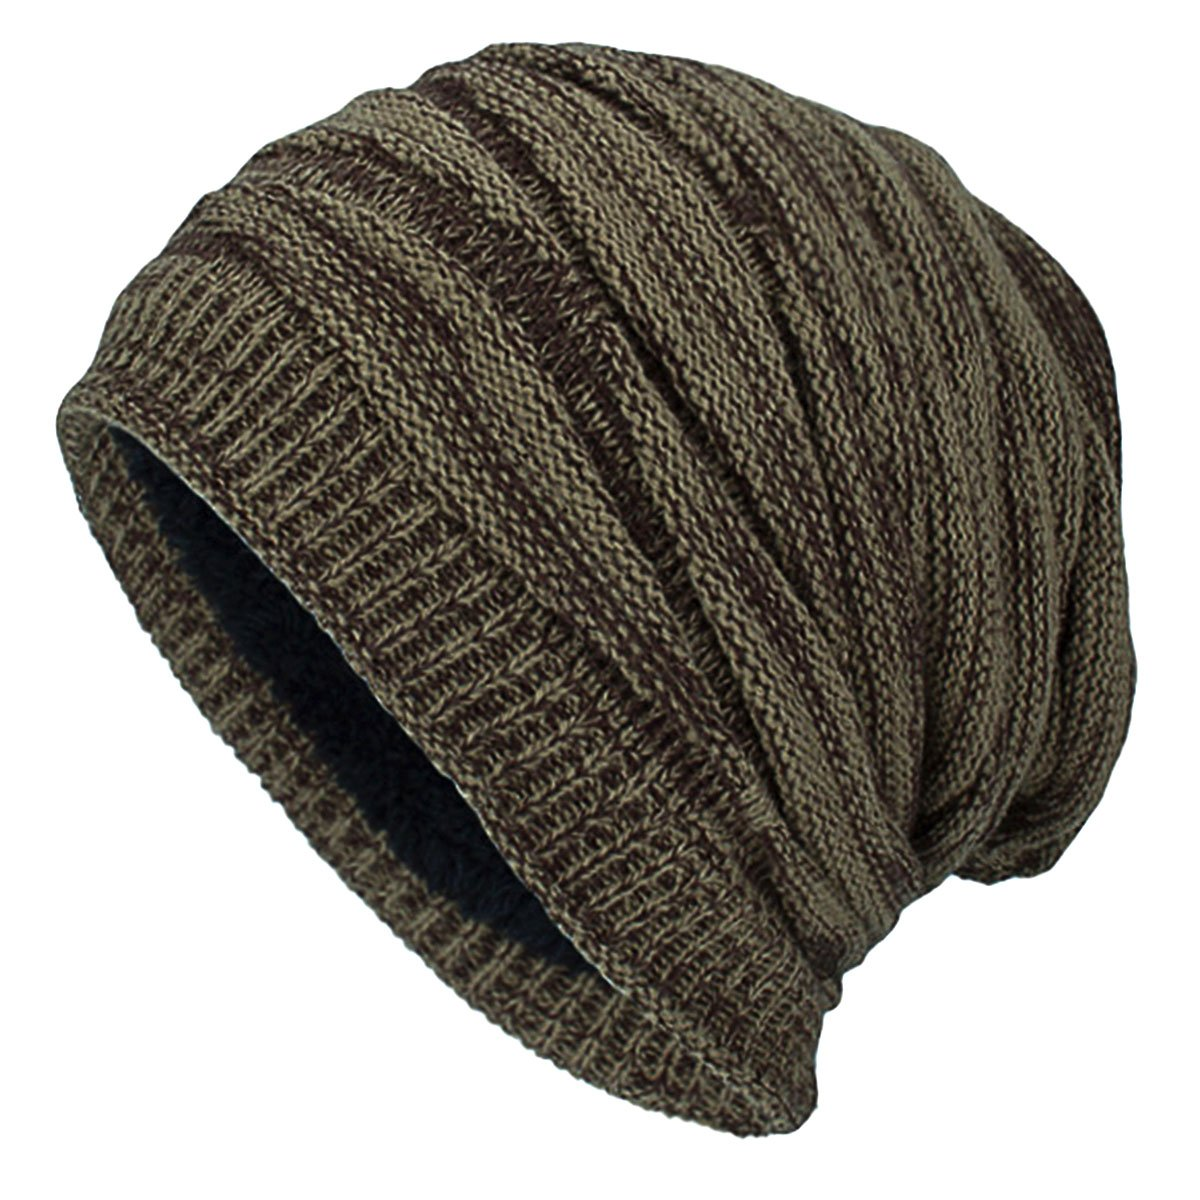 32c7b18144e Amazon.com  Thick Warm Beanie Hat - iParaAiluRy Slouchy Beanie Knitted Hat  for Women Men - Winter Fleece Lined Wool Baggy Slouch Skull Cap  Sports    ...